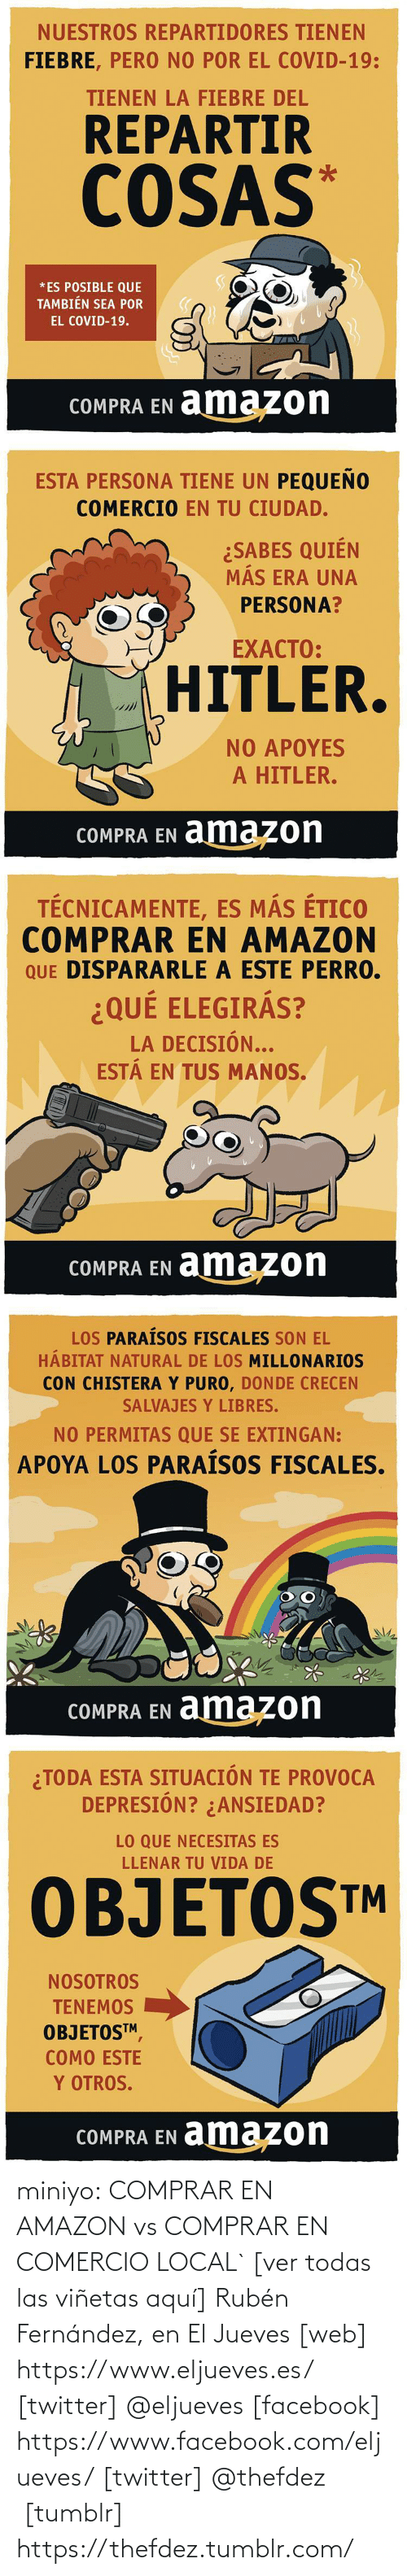 Facebook: miniyo:  COMPRAR EN AMAZON vs COMPRAR EN COMERCIO LOCAL` [ver todas las viñetas aquí] Rubén Fernández, en El Jueves [web] https://www.eljueves.es/ [twitter] @eljueves [facebook] https://www.facebook.com/eljueves/ [twitter] @thefdez   [tumblr] https://thefdez.tumblr.com/